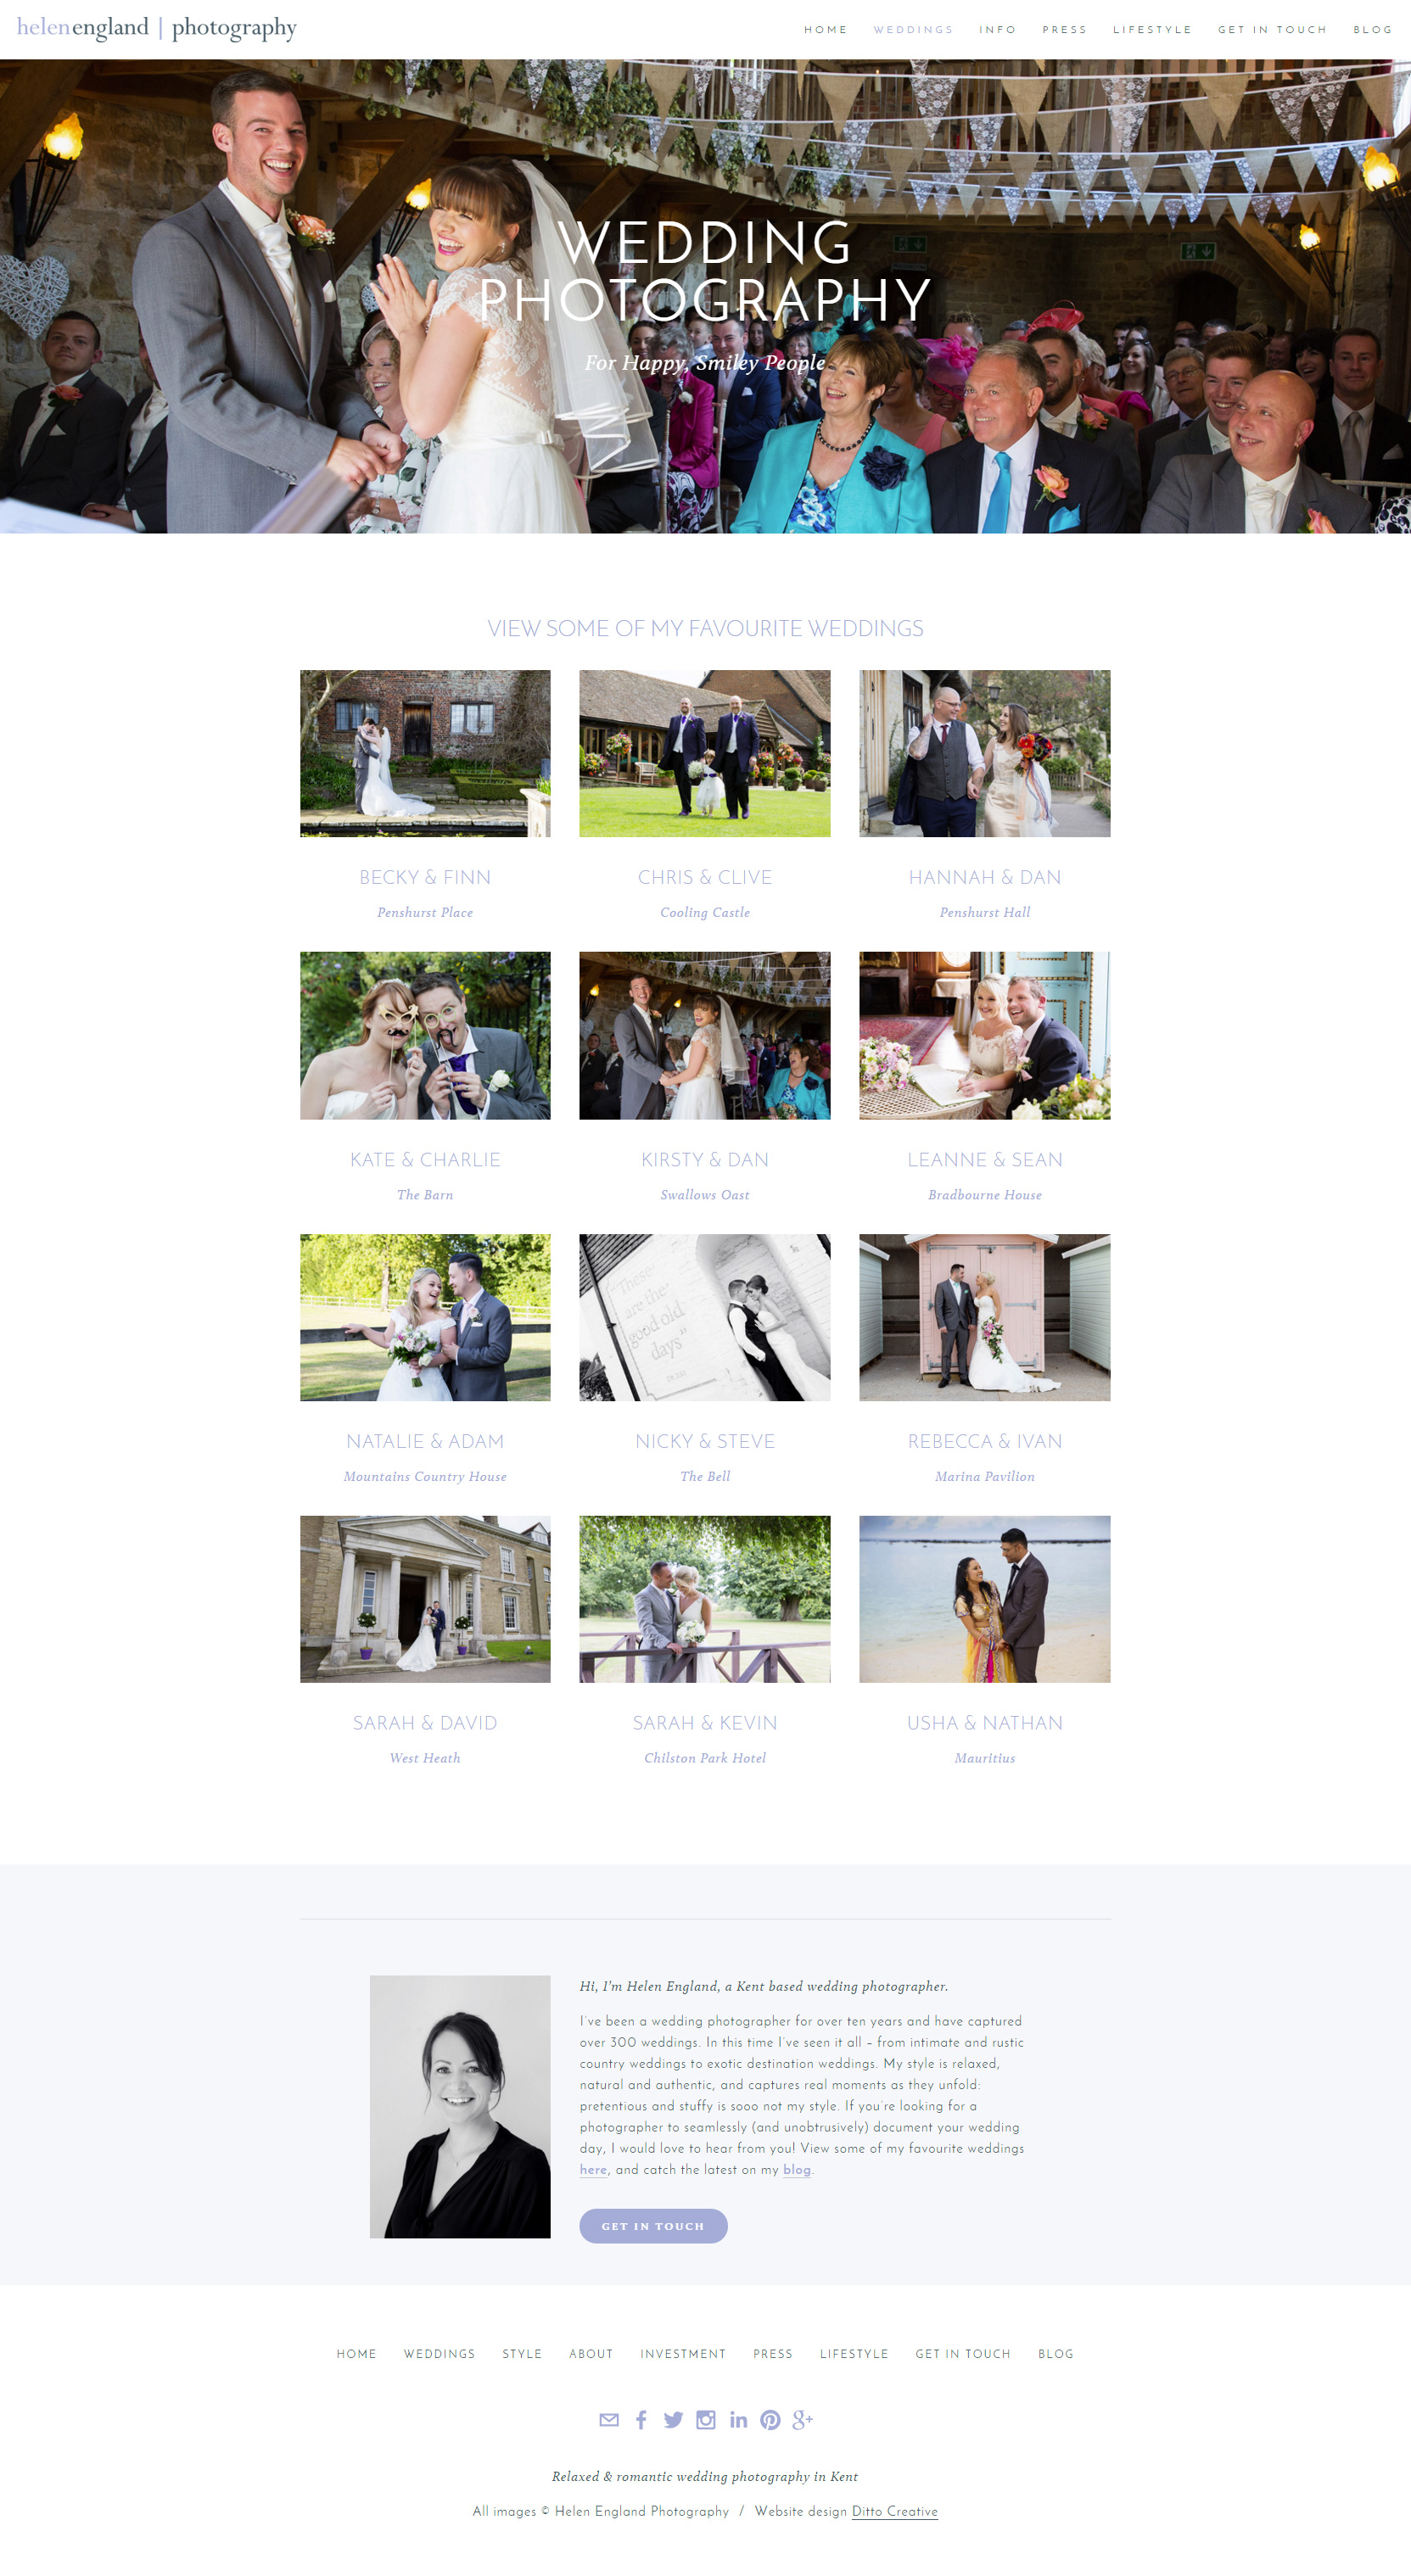 Helen England Photography Website design by Ditto Creative, Kent